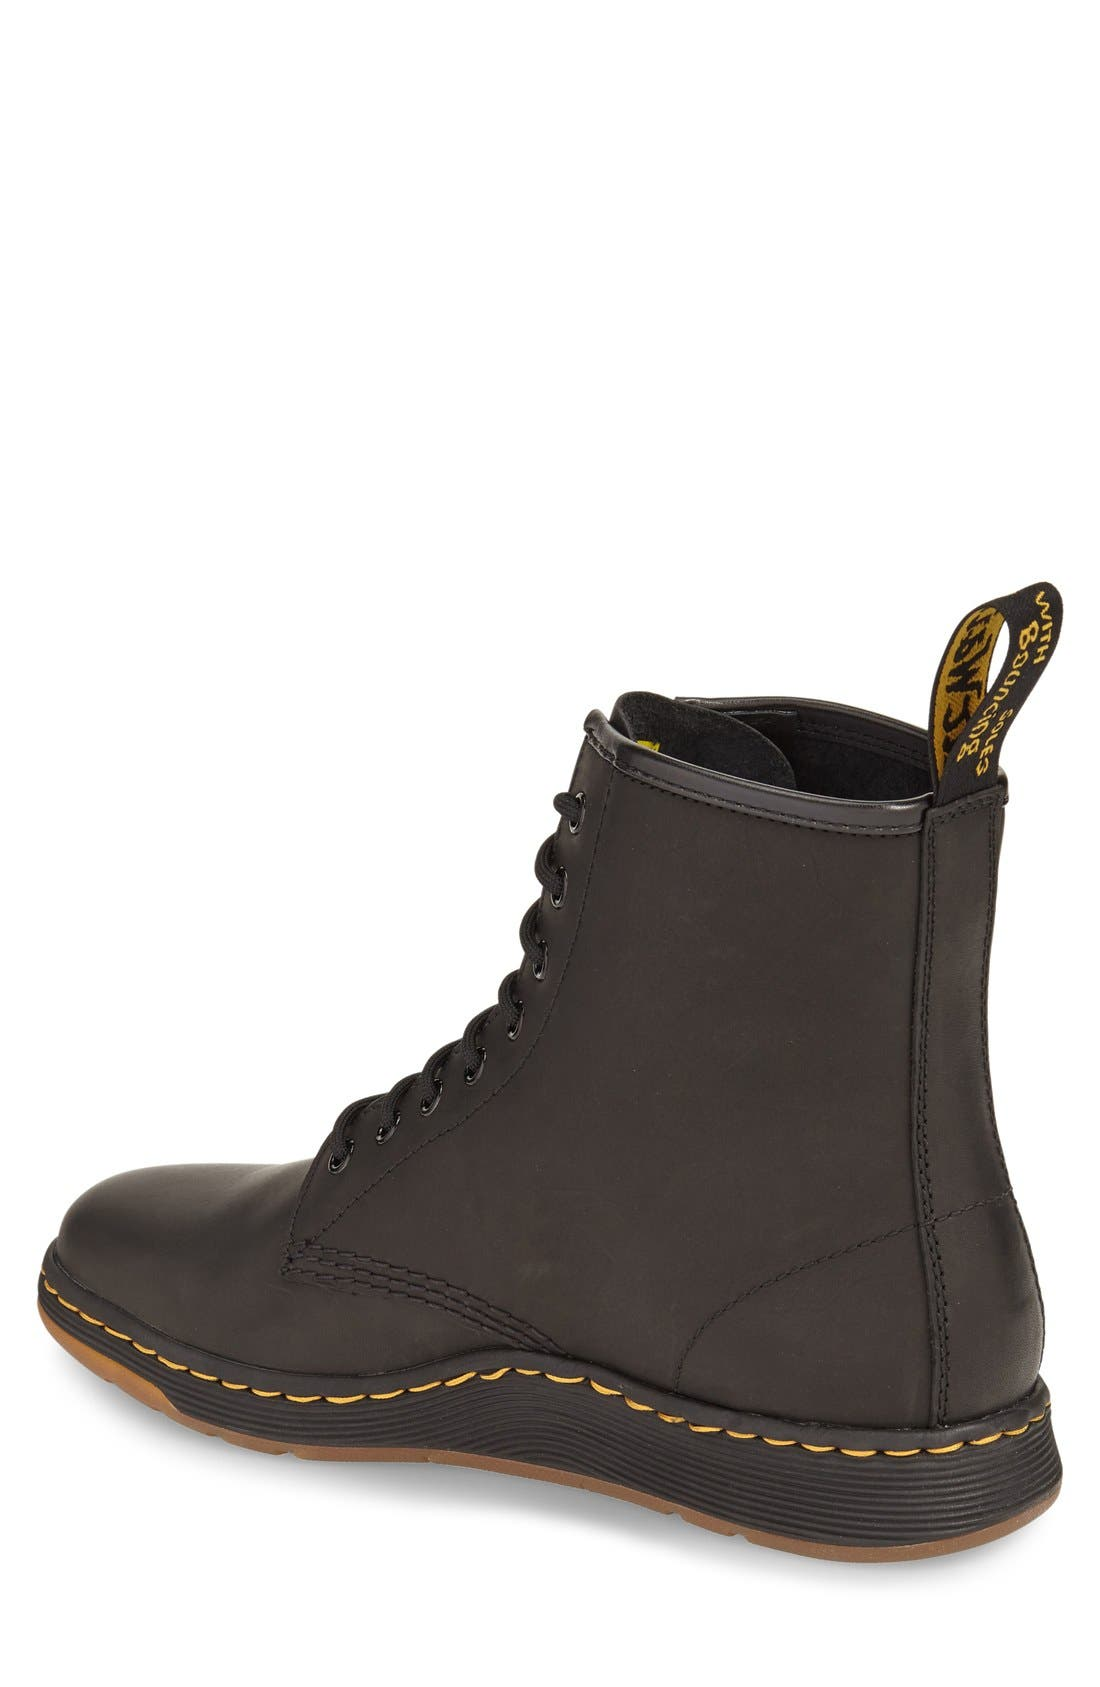 DR. MARTENS, 'Newton' Boot, Alternate thumbnail 3, color, BLACK LEATHER